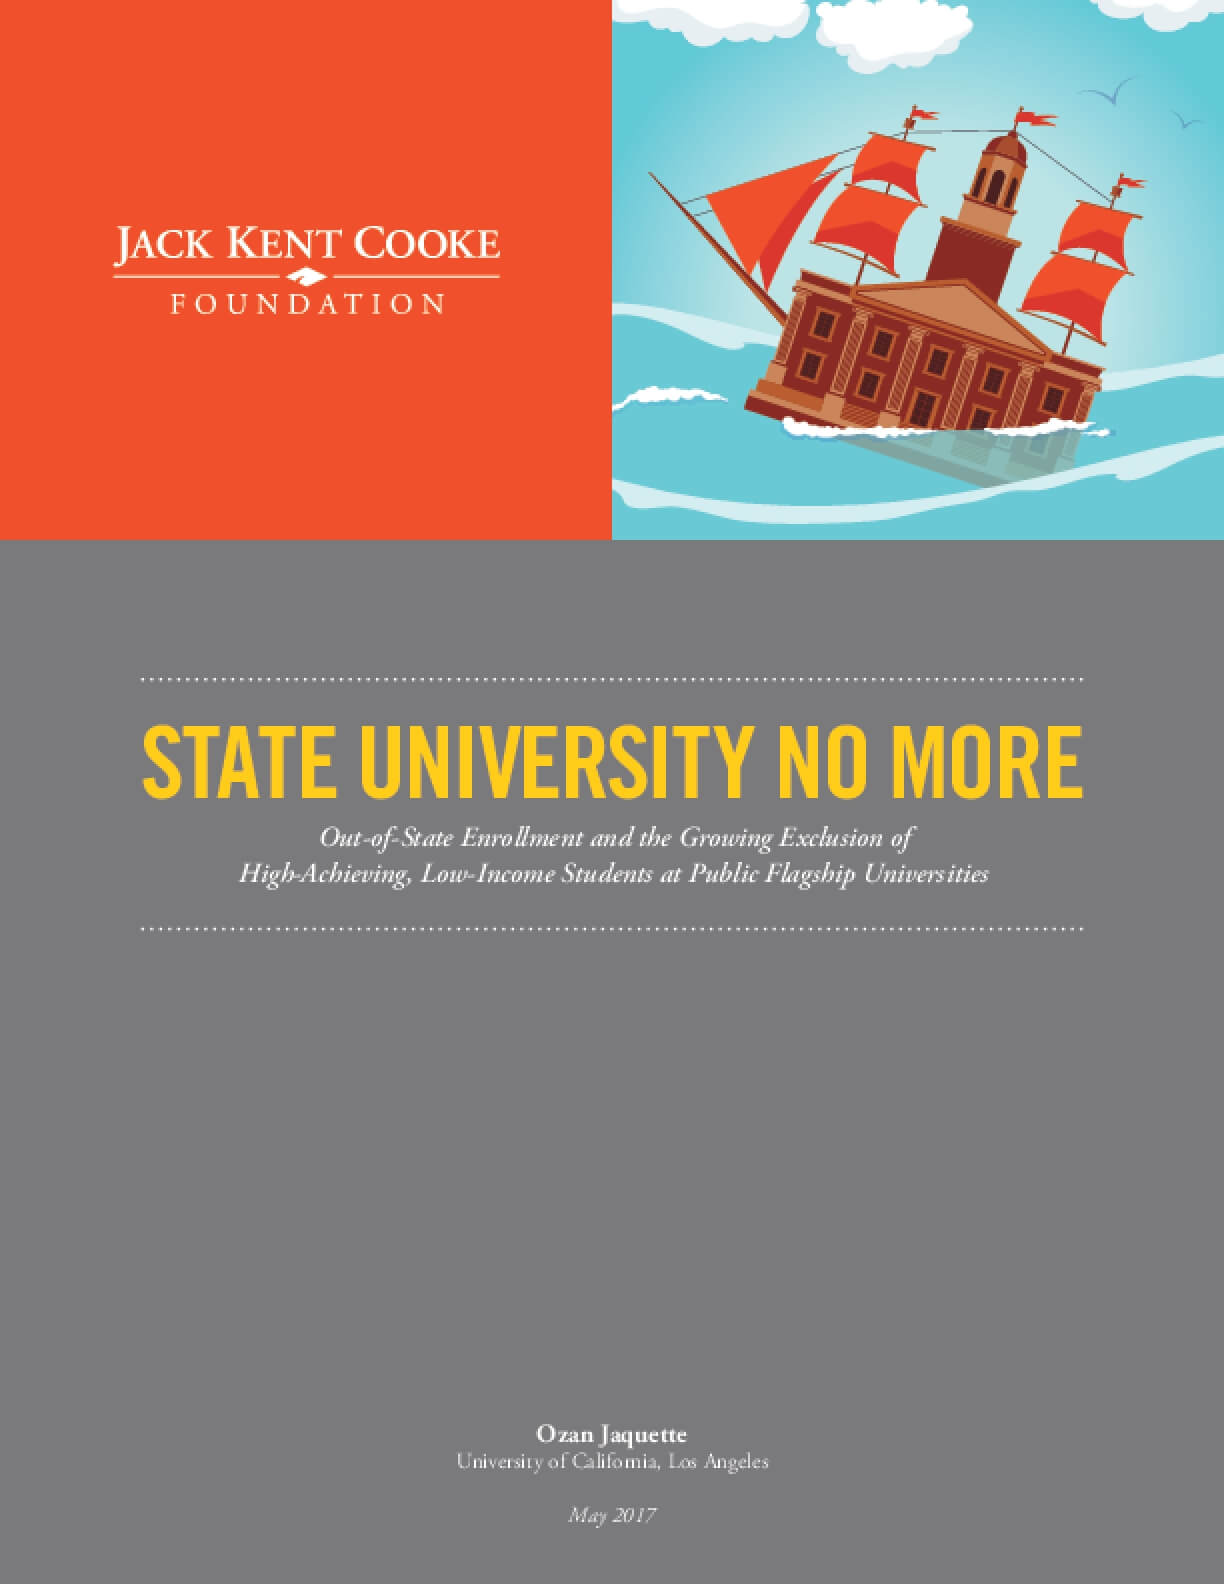 State University No More: Out-of-State Enrollment and the Growing Exclusion of High-Achieving, Low-Income Students at Public Flagship Universities